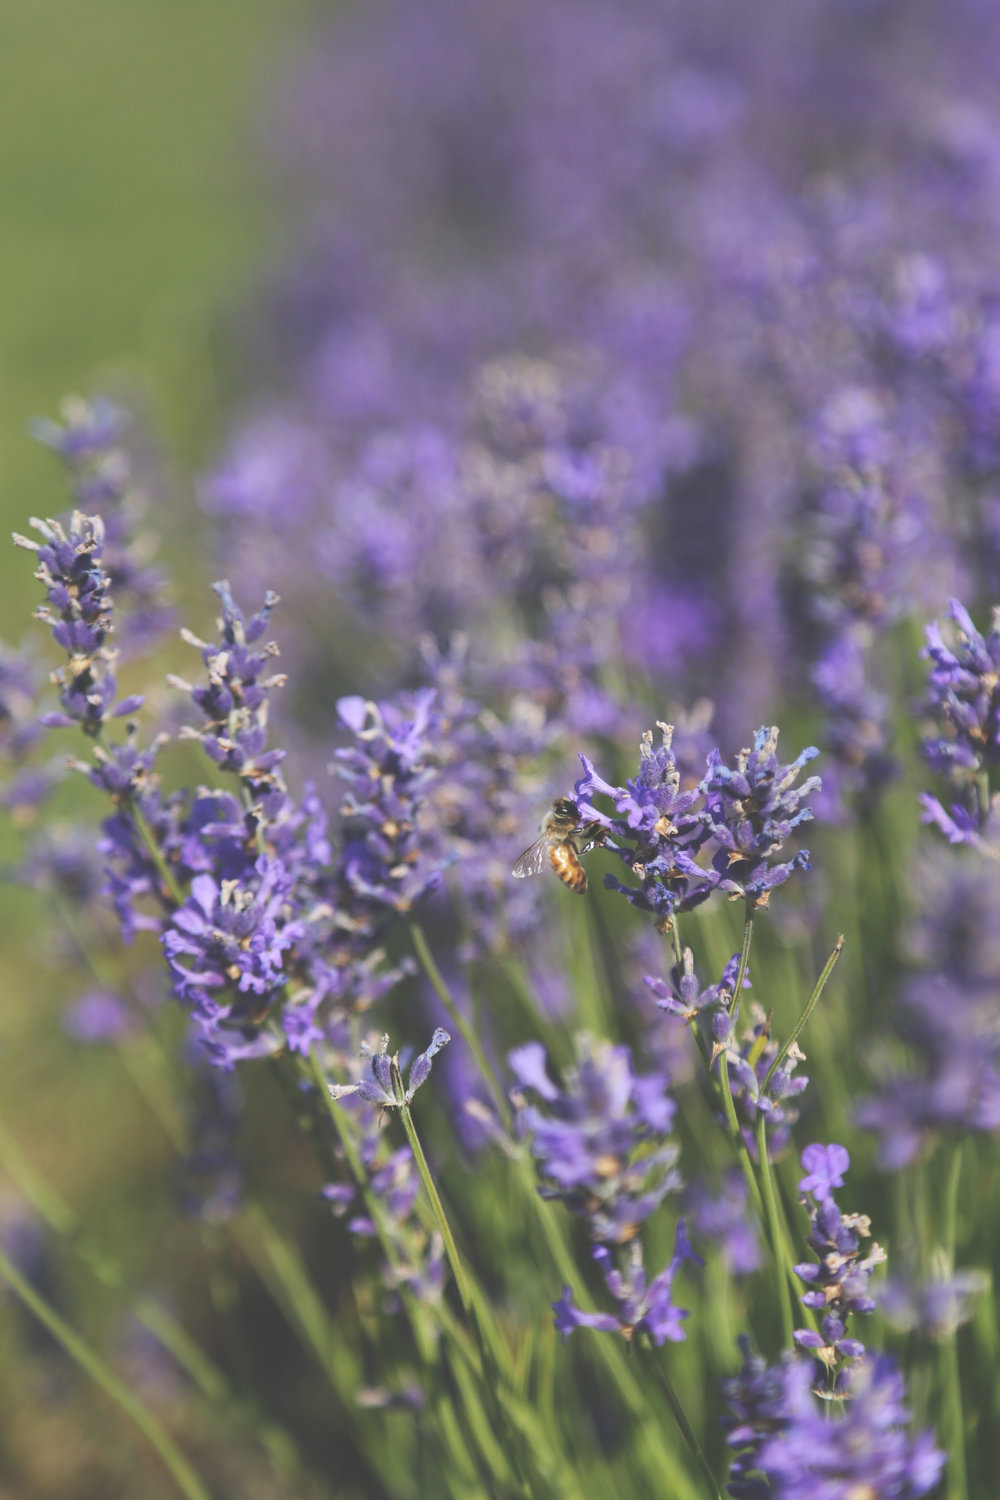 Also on Washington Island sits a lovely little lavender farm. I. Love. Lavender. Did you know lavender caramels are delicious?